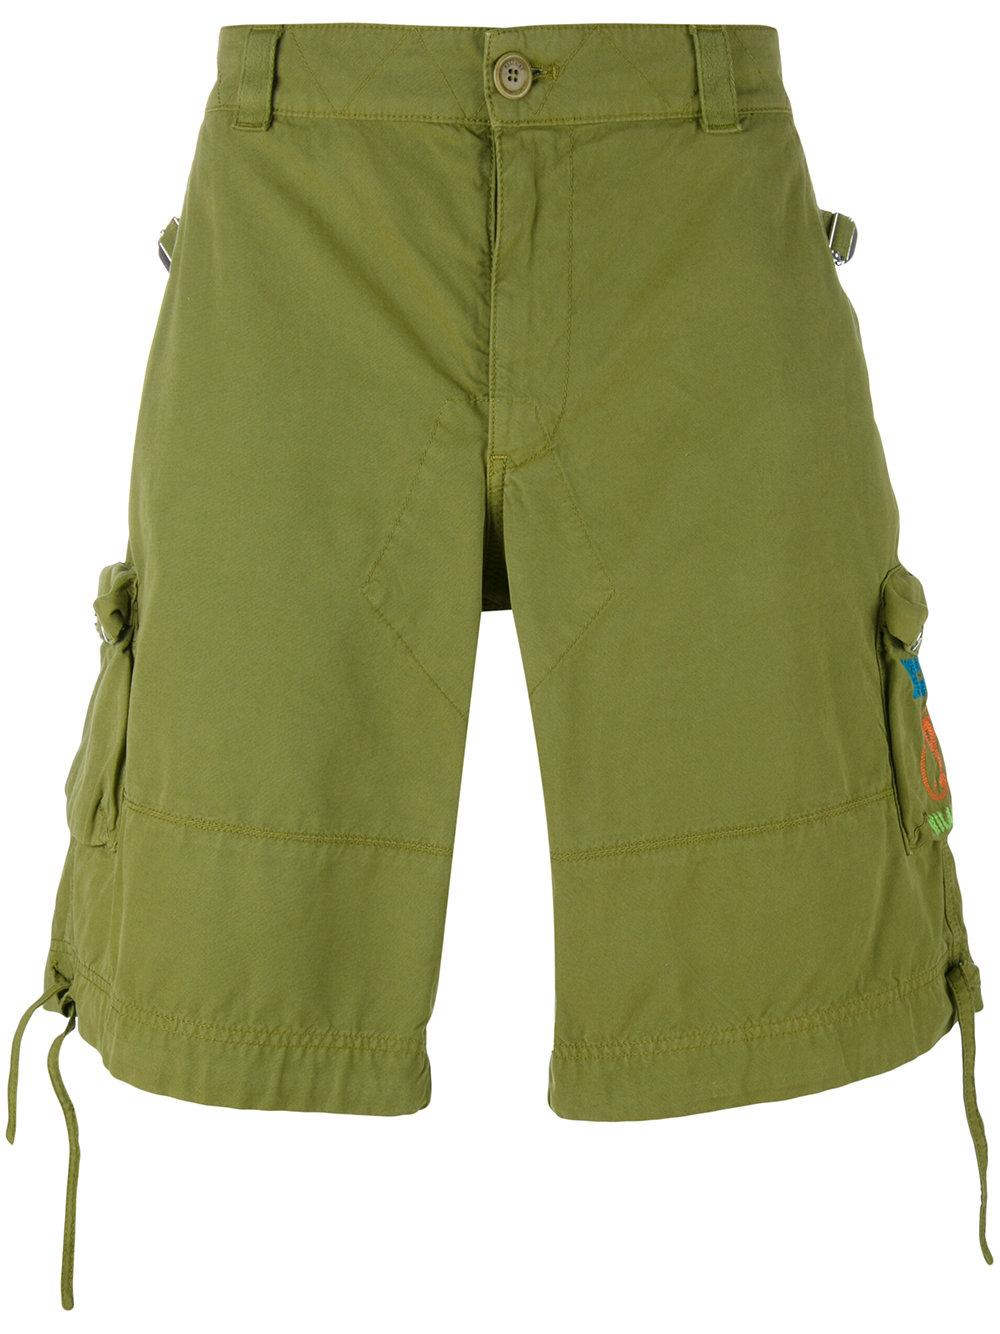 moschino logo pocket cargo shorts in green for men lyst. Black Bedroom Furniture Sets. Home Design Ideas